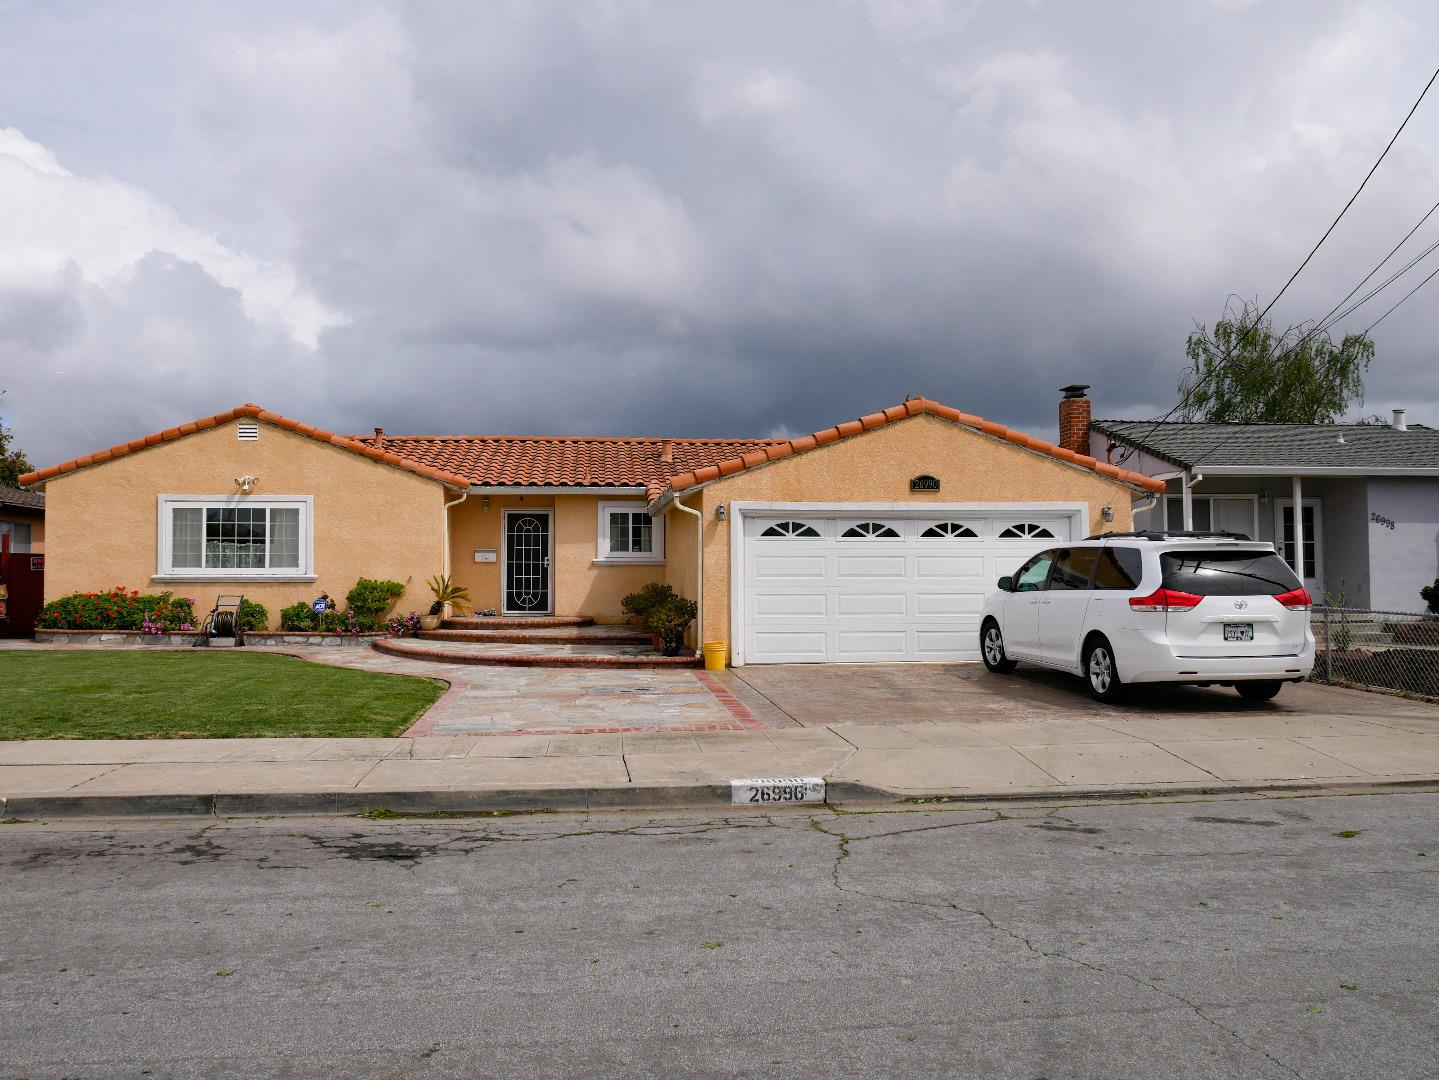 Additional photo for property listing at 26990 Jennings Way 26990 Jennings Way Hayward, Kalifornien 94544 Vereinigte Staaten